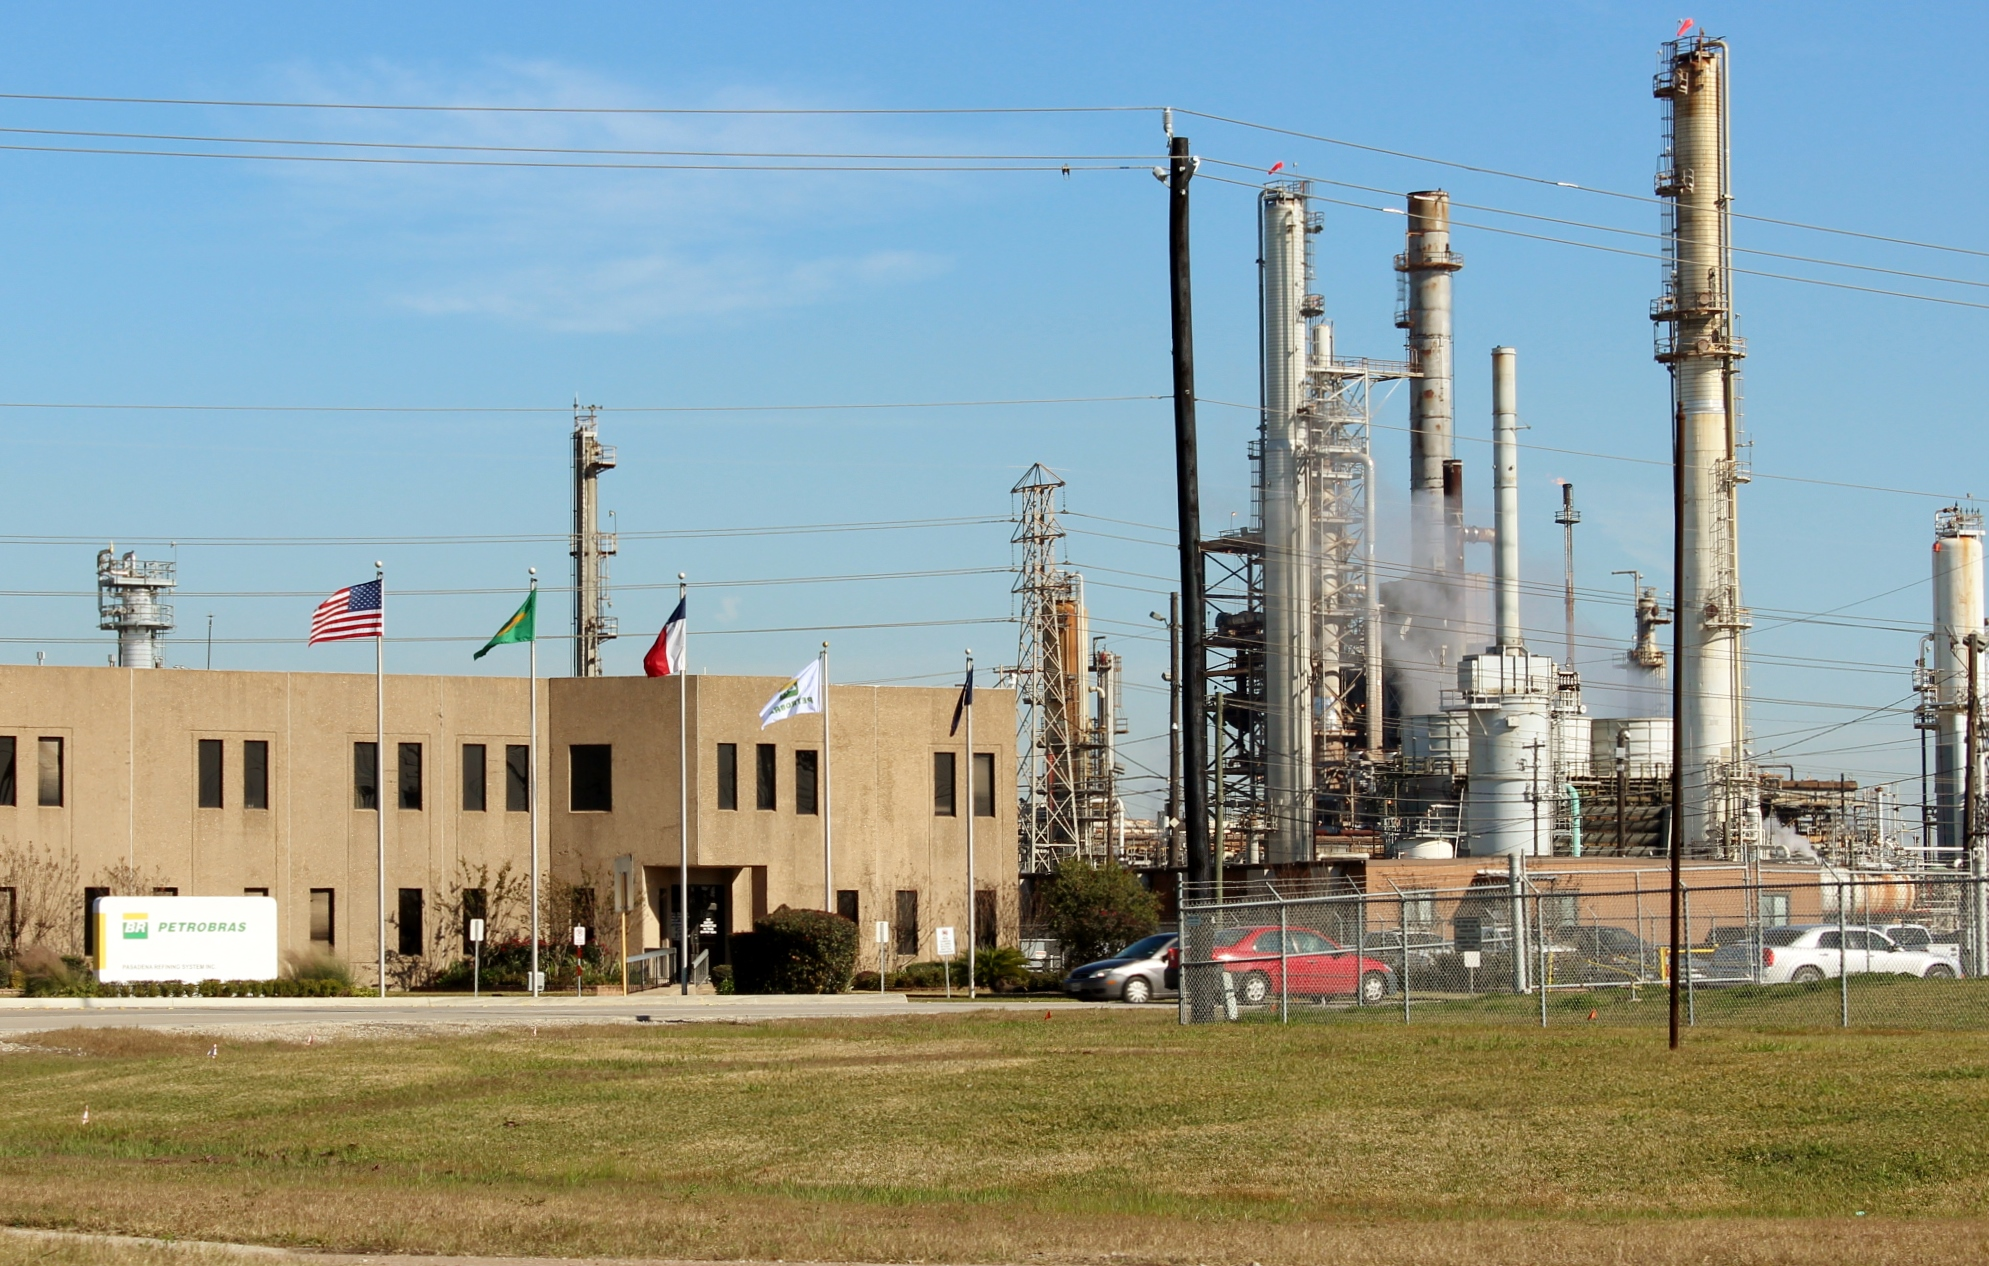 Petrobras's Pasadena Refining System plant is near the Washburn Tunnel on the Houston Ship Channel